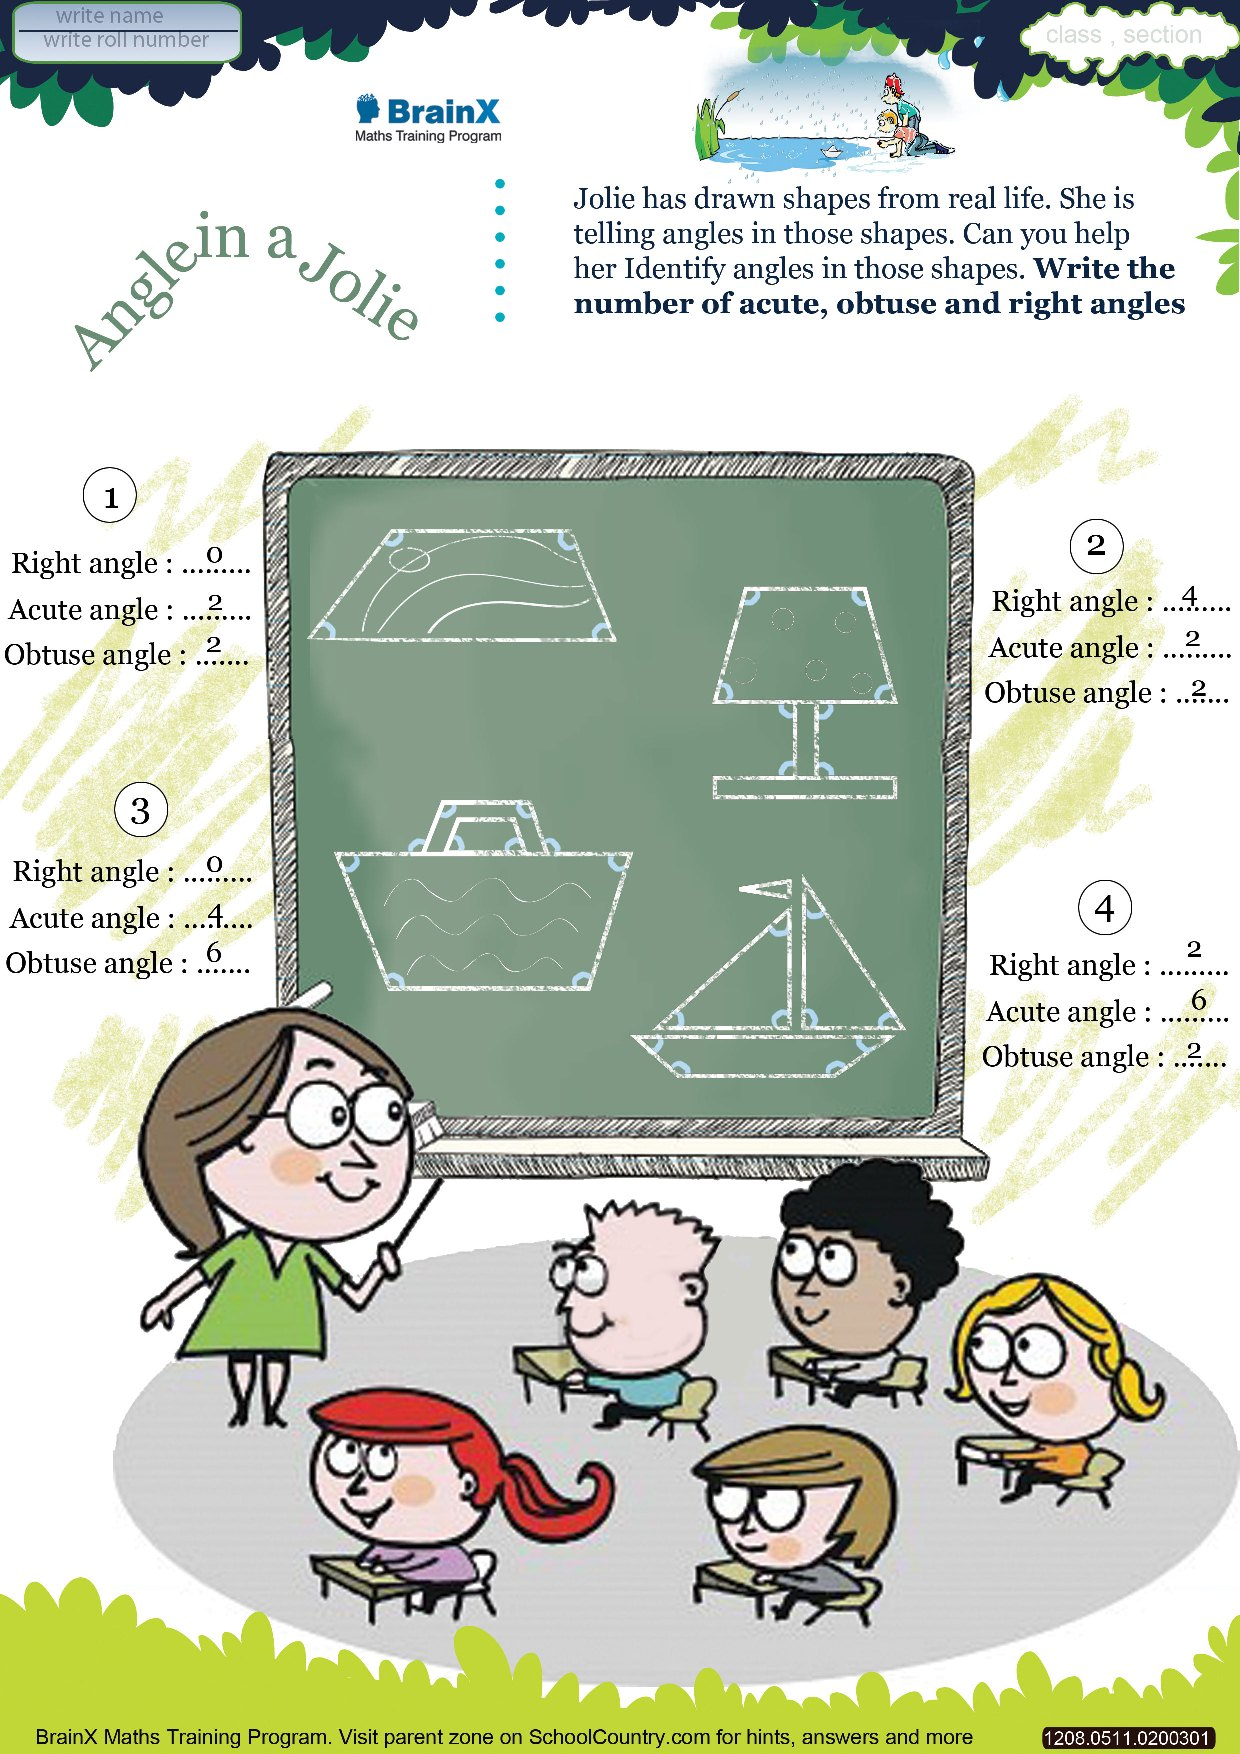 hight resolution of Printable Geometry Math Olympiad Worksheets for kids of Grade 5 - Angle -in-a-Jolie